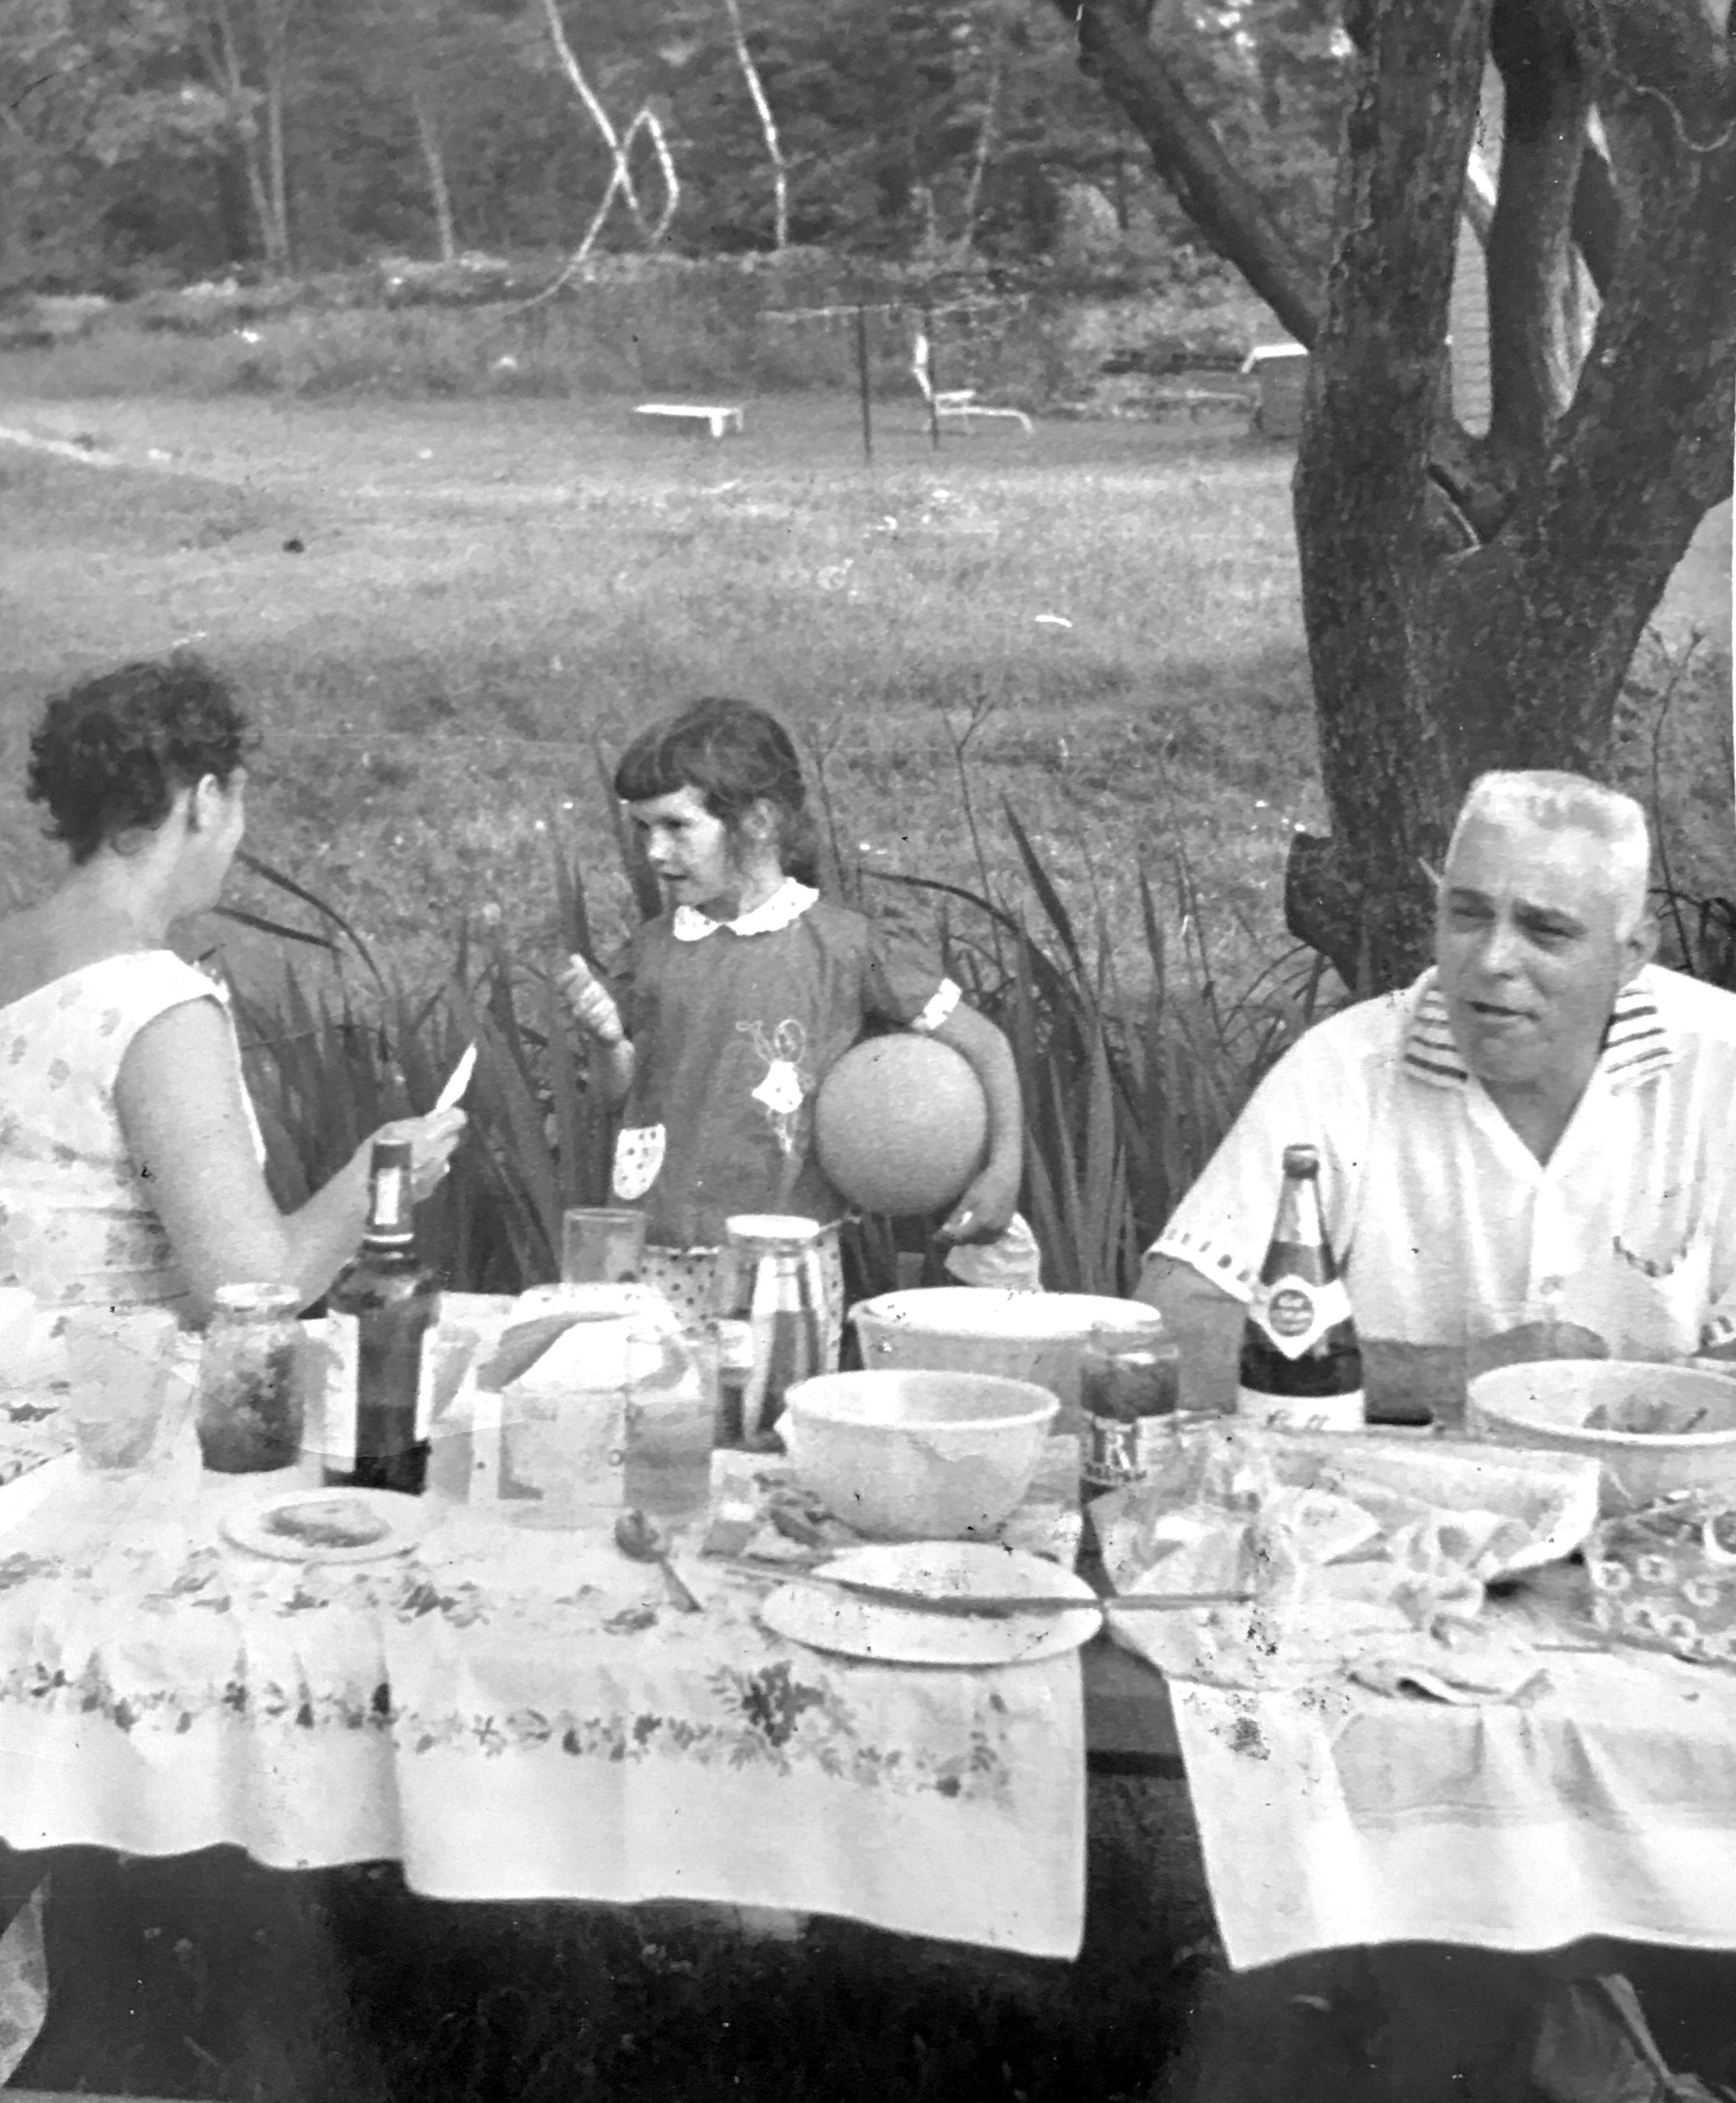 Beverly Lowe, Charles and Marjorie Casassa. Photo credit: Beverly Lowe Obremski.